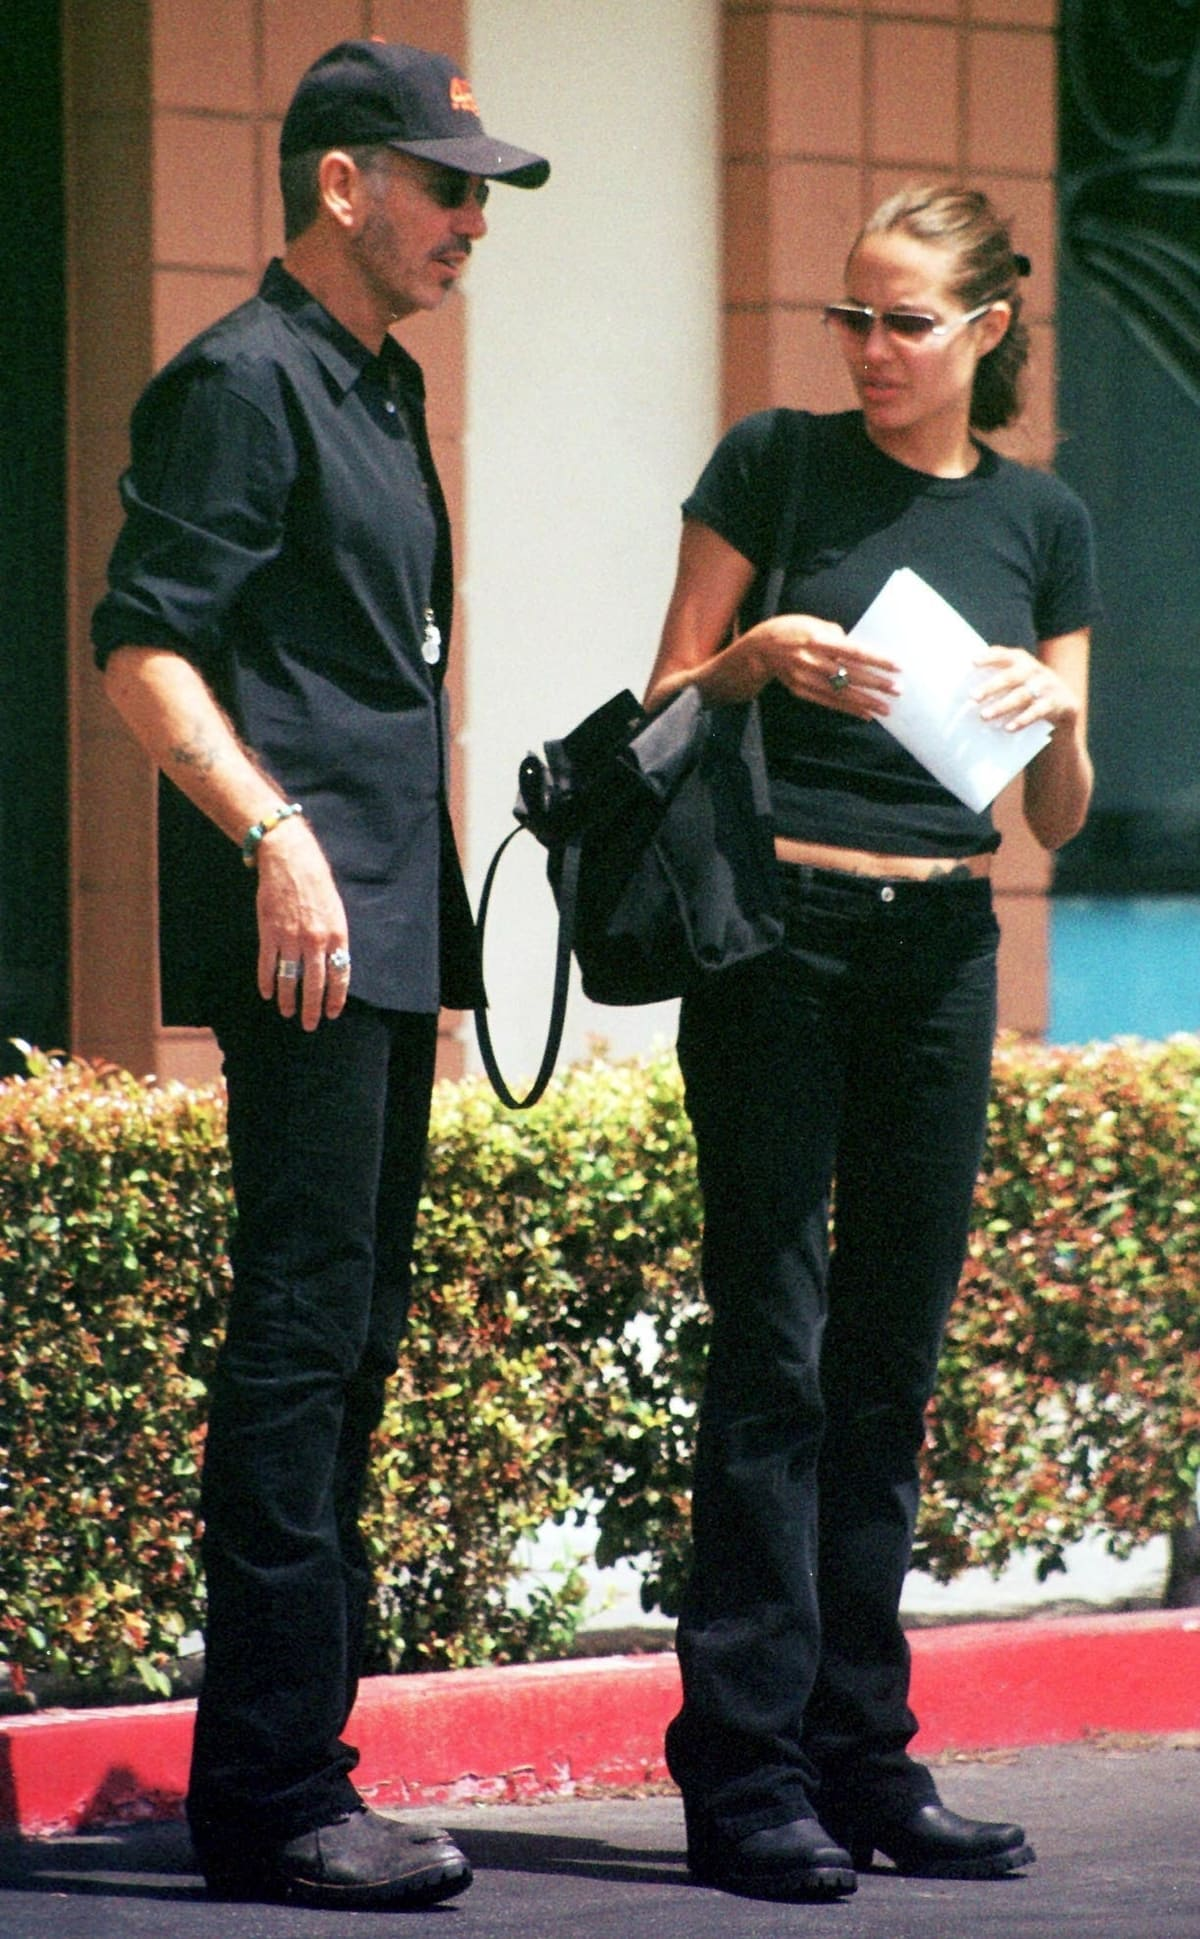 Meeting on the set of the 1999 film Pushing Tin, Billy Bob Thornton is 20 years older than Angelina Jolie